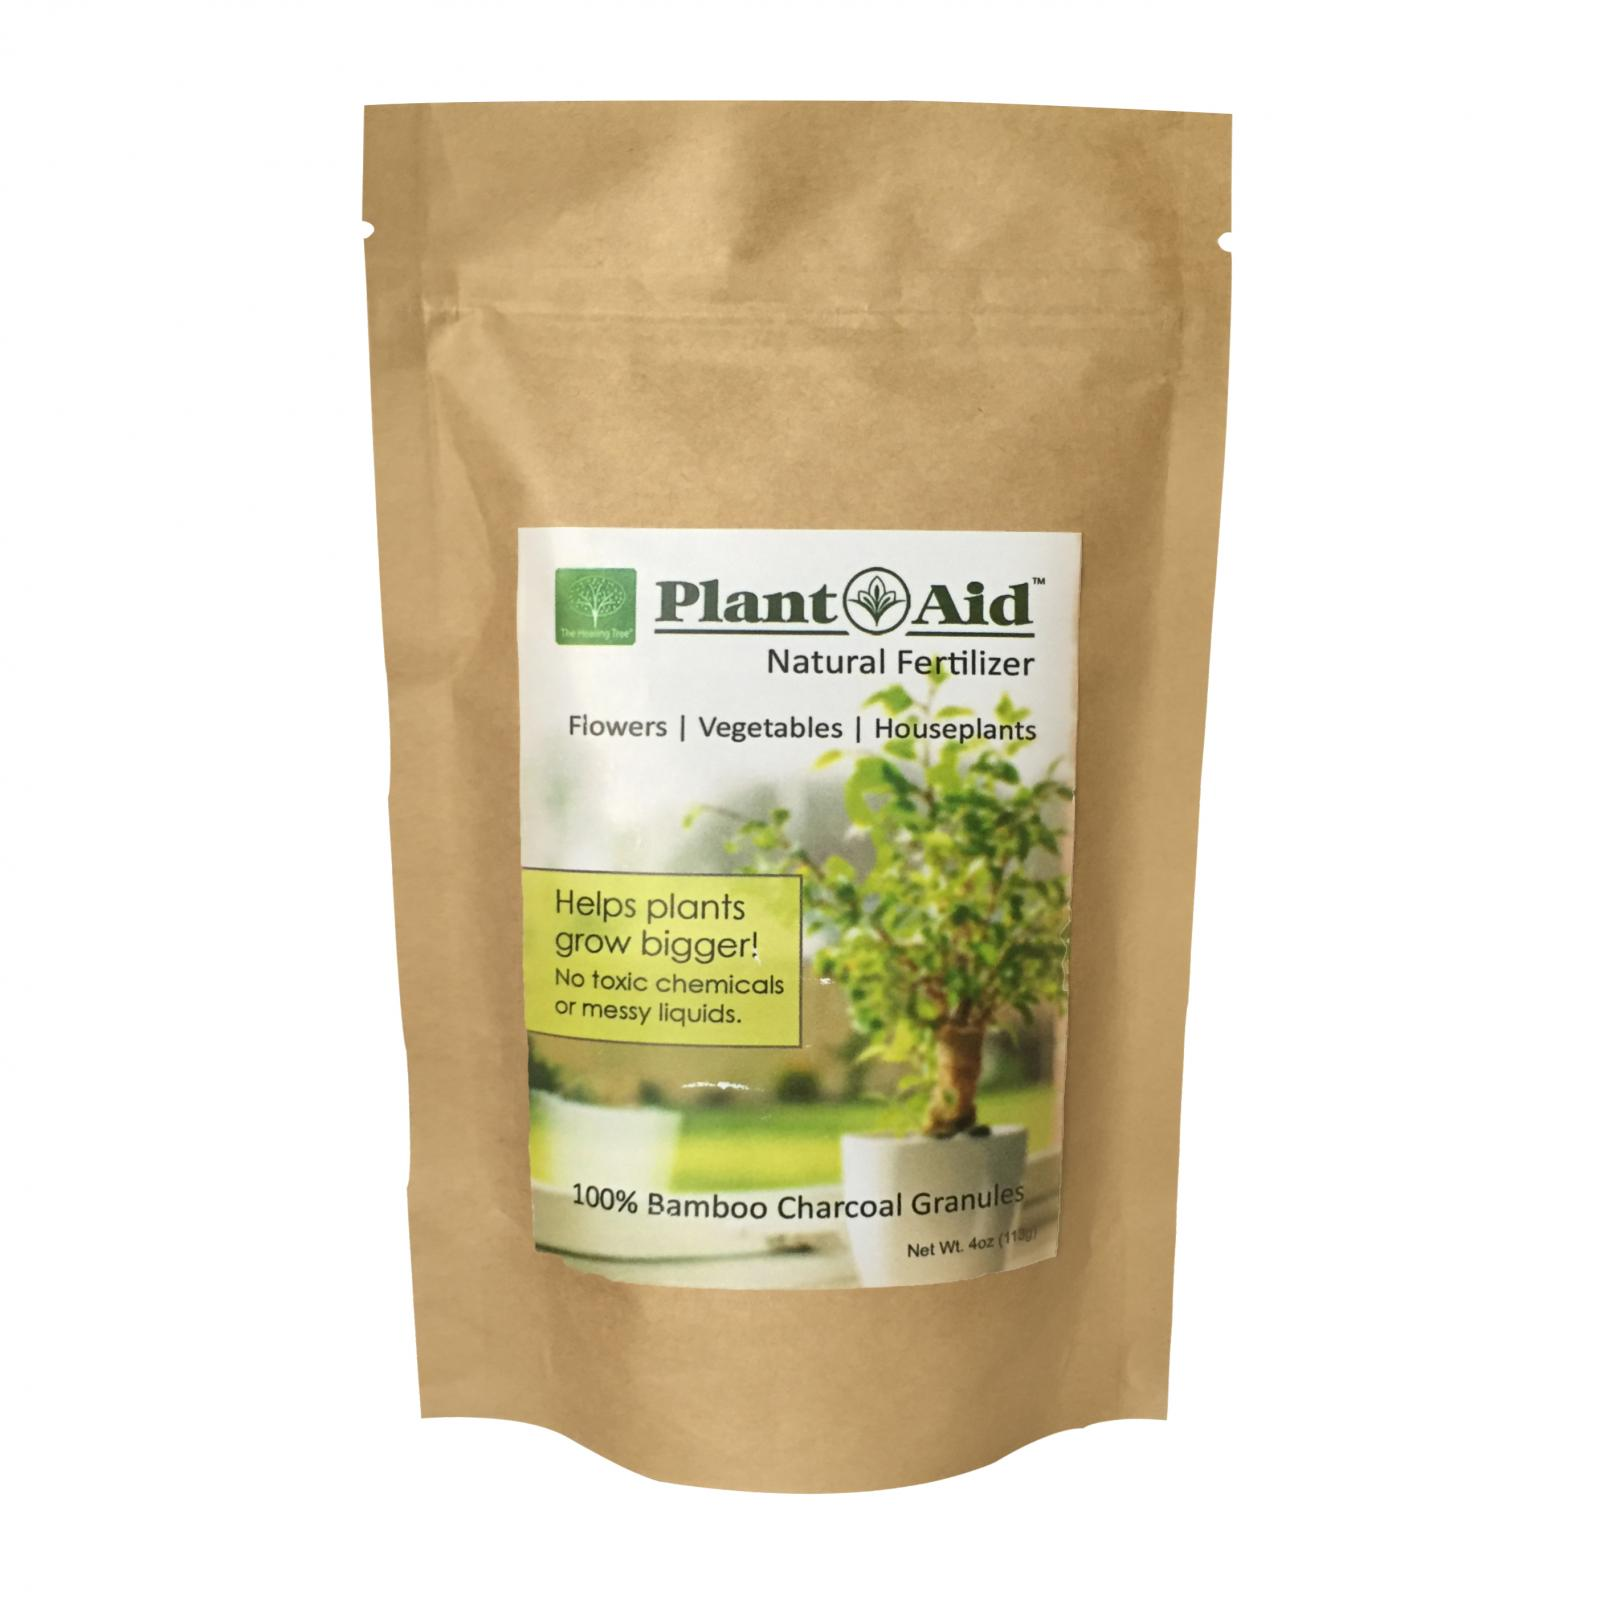 Plant Aid Natural Fertilizer - Helps Boost Plant Growth by up to 25% - Bamboo Charcoal - Non-Toxic